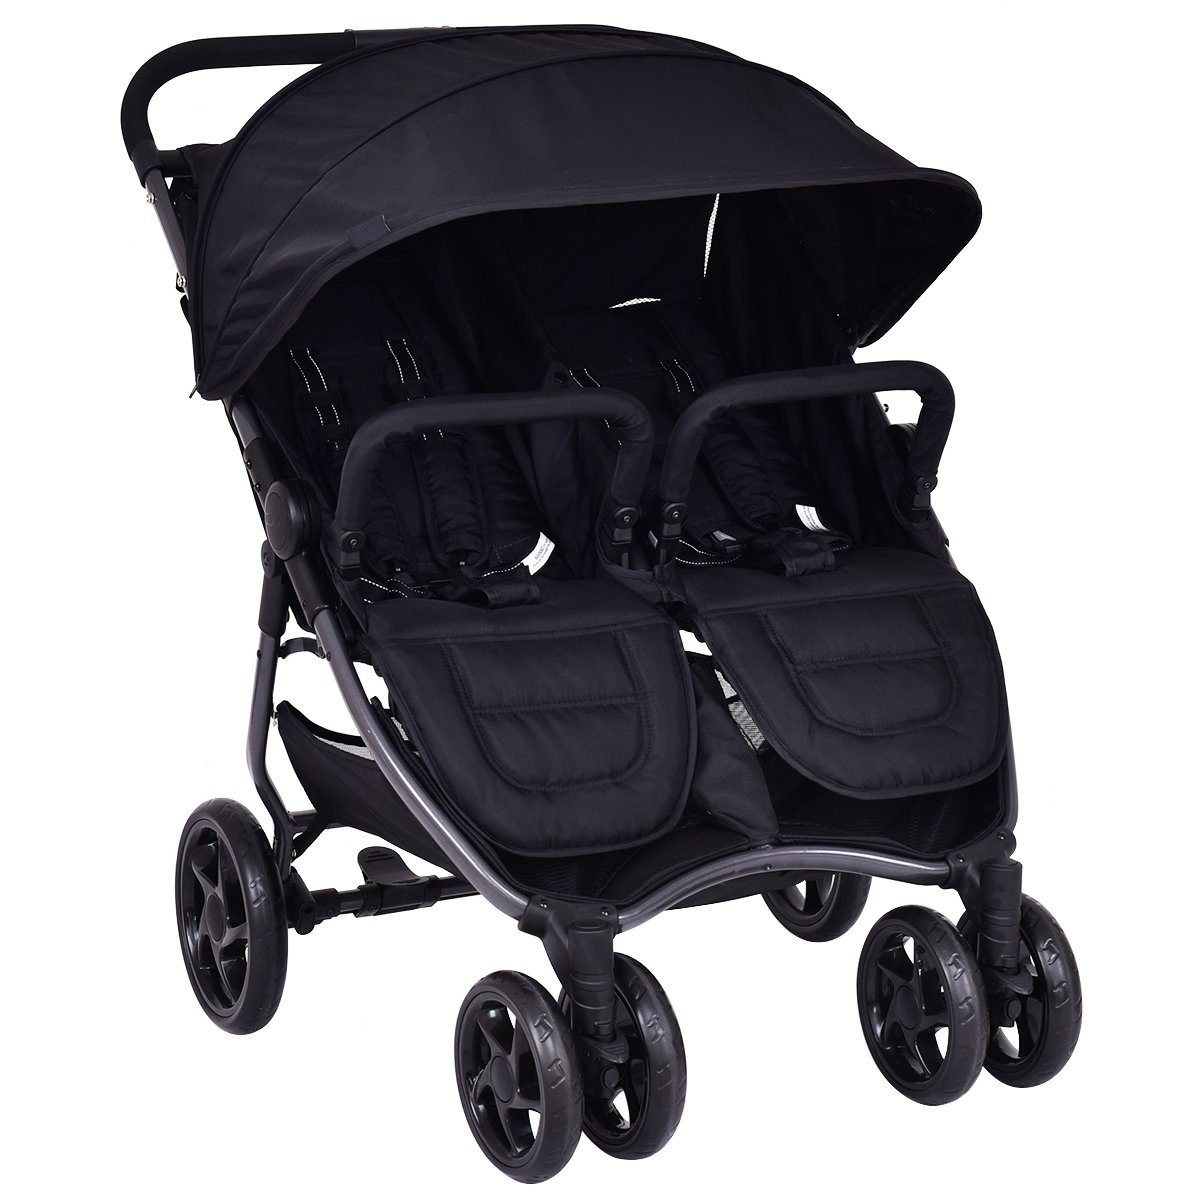 Costzon Double Stroller Foldable Aluminum Twin Travel Stroller with Umbrella